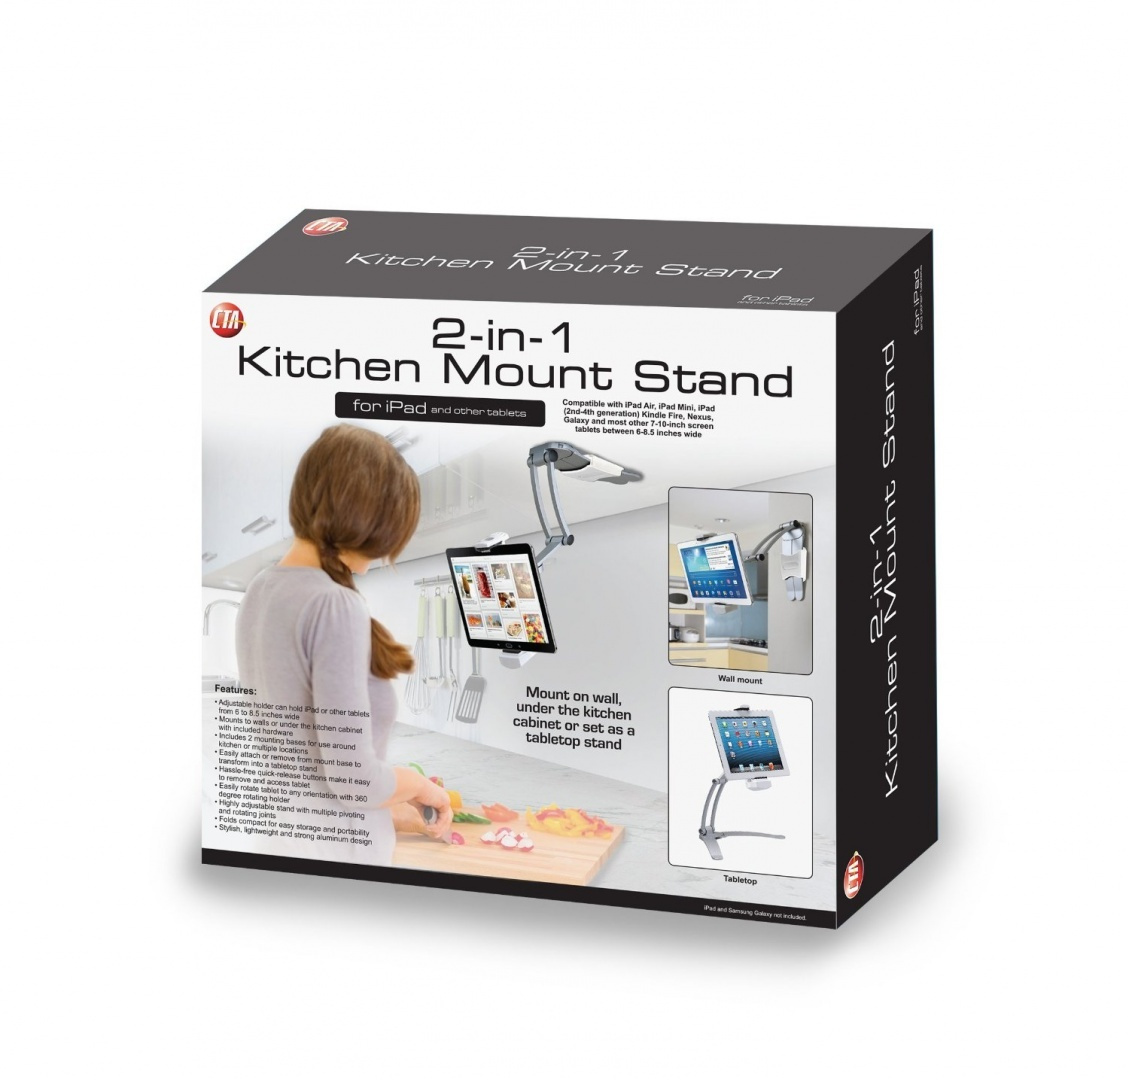 2-In-1 Kitchen Mount Stand for iPad/ iPad Air/iPad mini and All ...